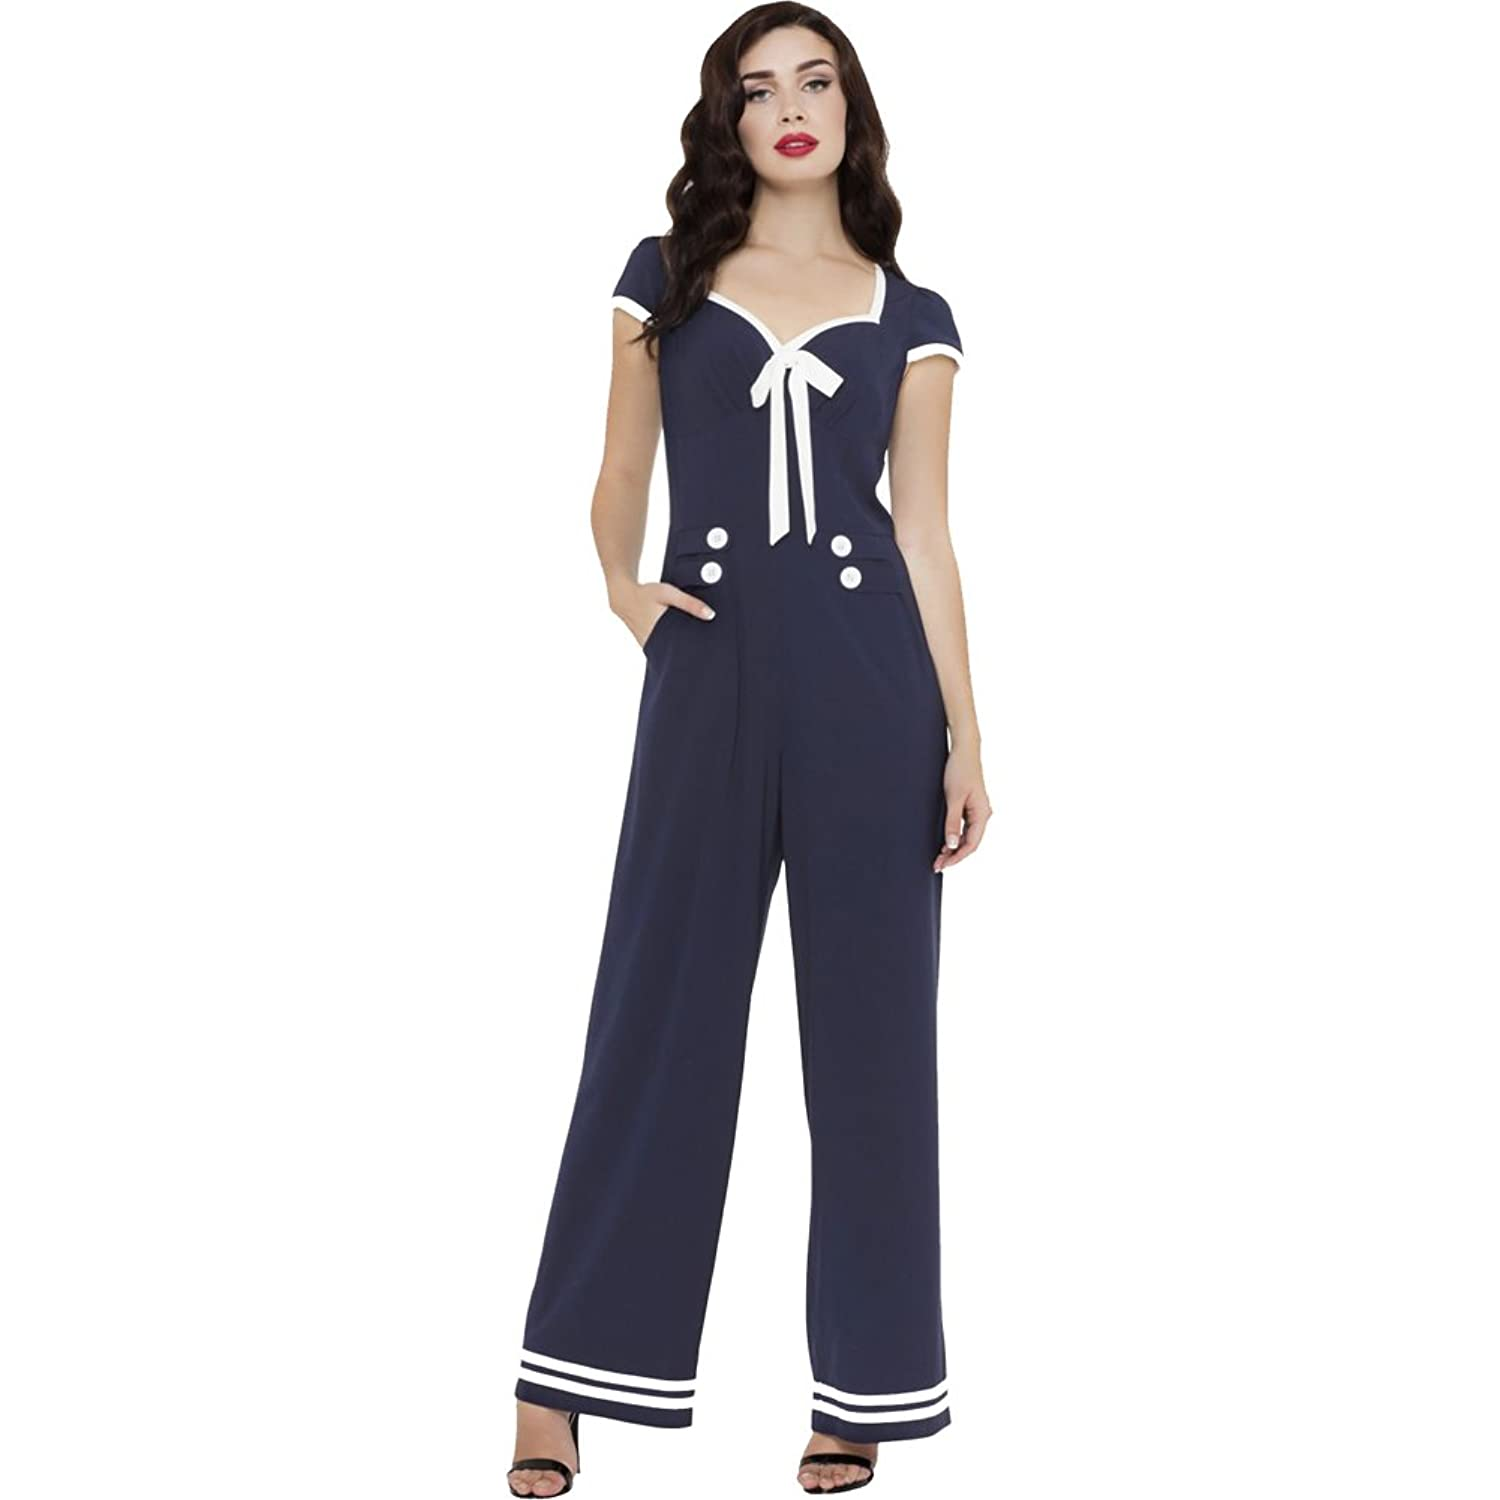 Swing Dance Dresses | Lindy Hop Dresses & Clothing Womens Voodoo Vixen JOLENE Nautical Stripped Wide Leg Jumpsuit Navy $73.95 AT vintagedancer.com